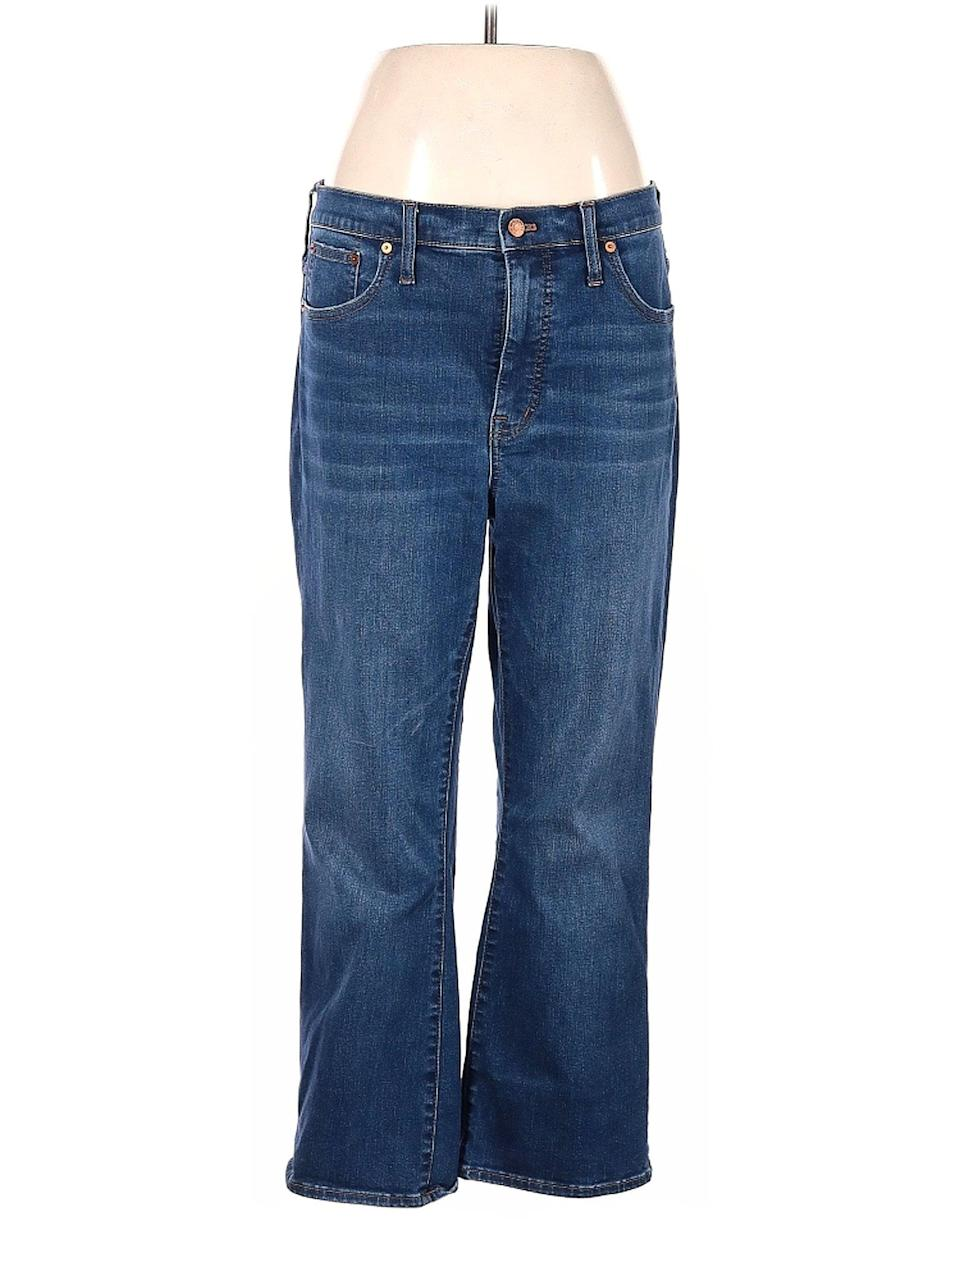 <p>Madewell recently partnered with ThredUp on its Madewell Forever curation, which allows customers to trade in their pre-loved denim at a more affordable price. These <span>Madewell High-Rise Straight-Leg Jeans in Medium Wash</span> ($46) ship from Georgia and were originally $130!</p>